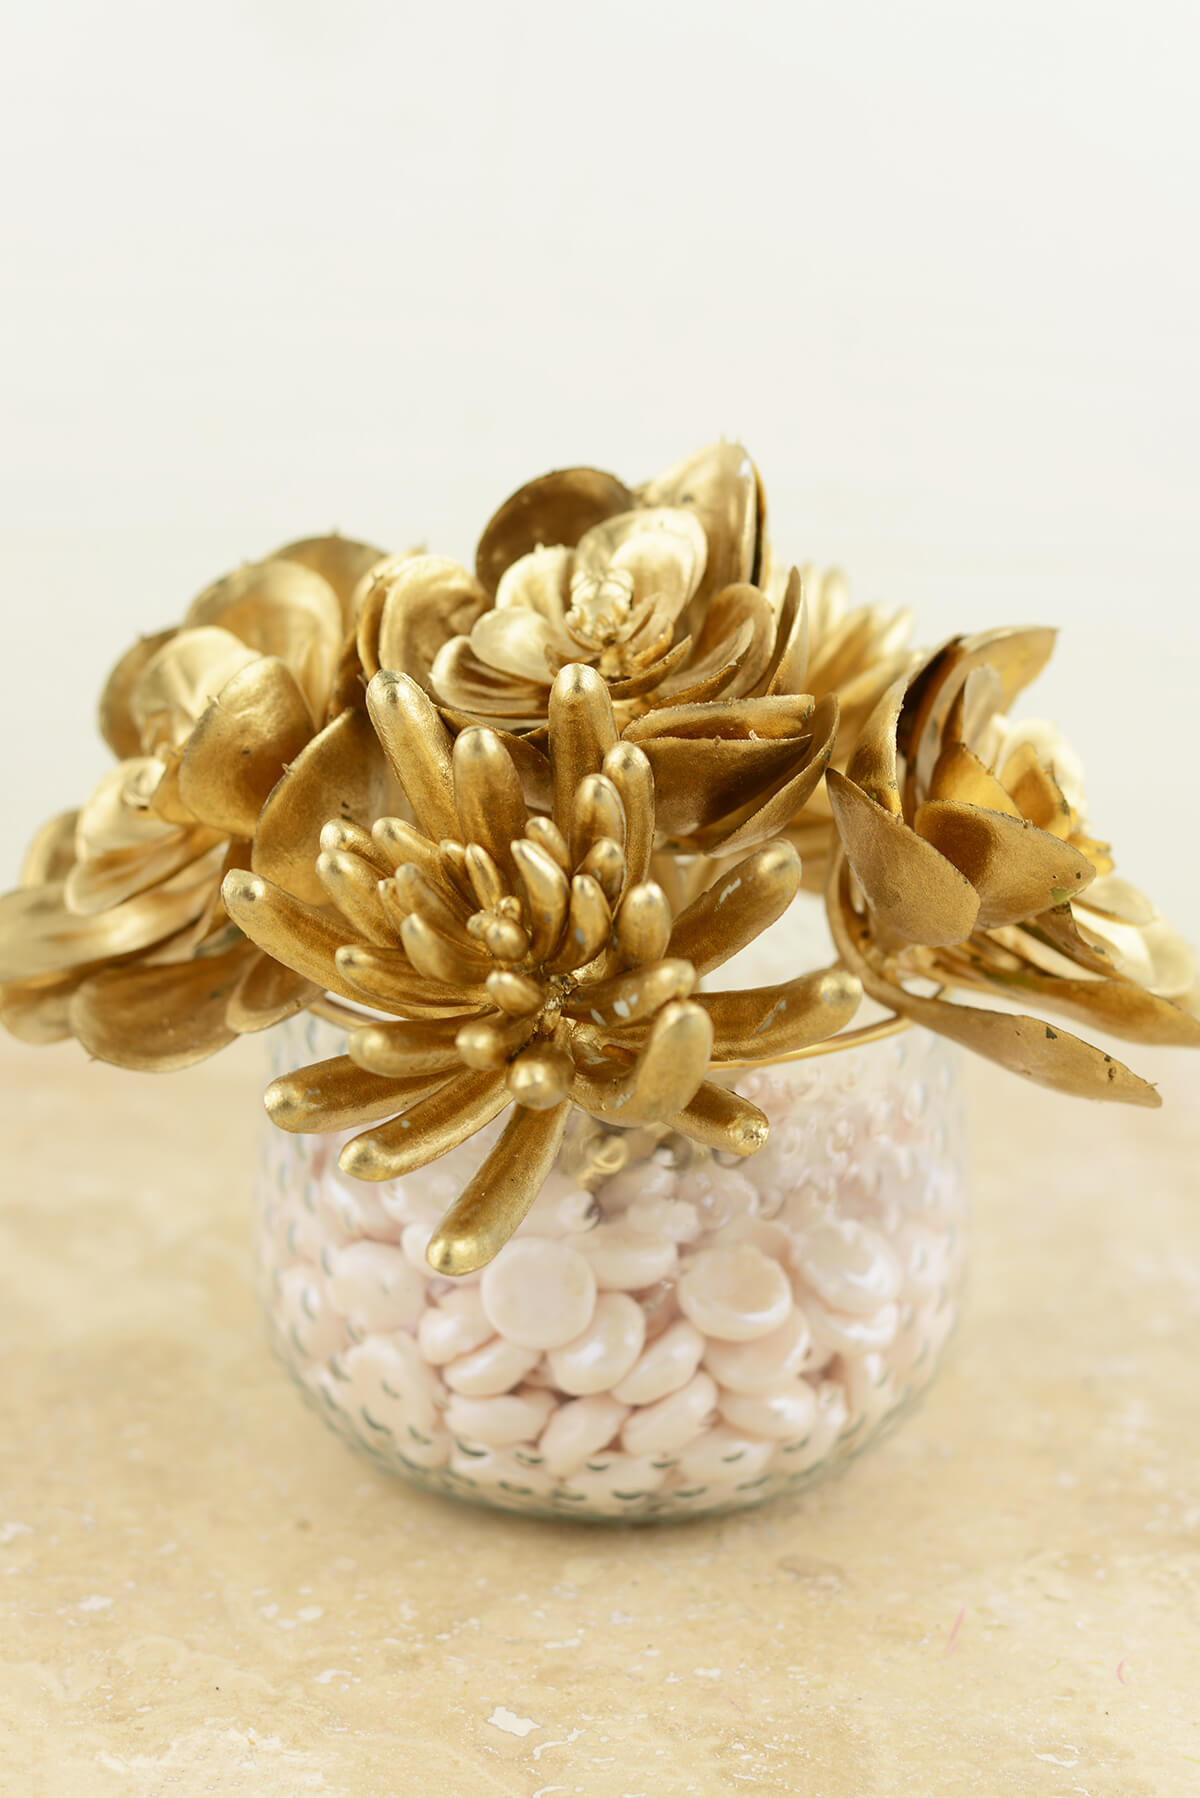 gold succulents 6 5